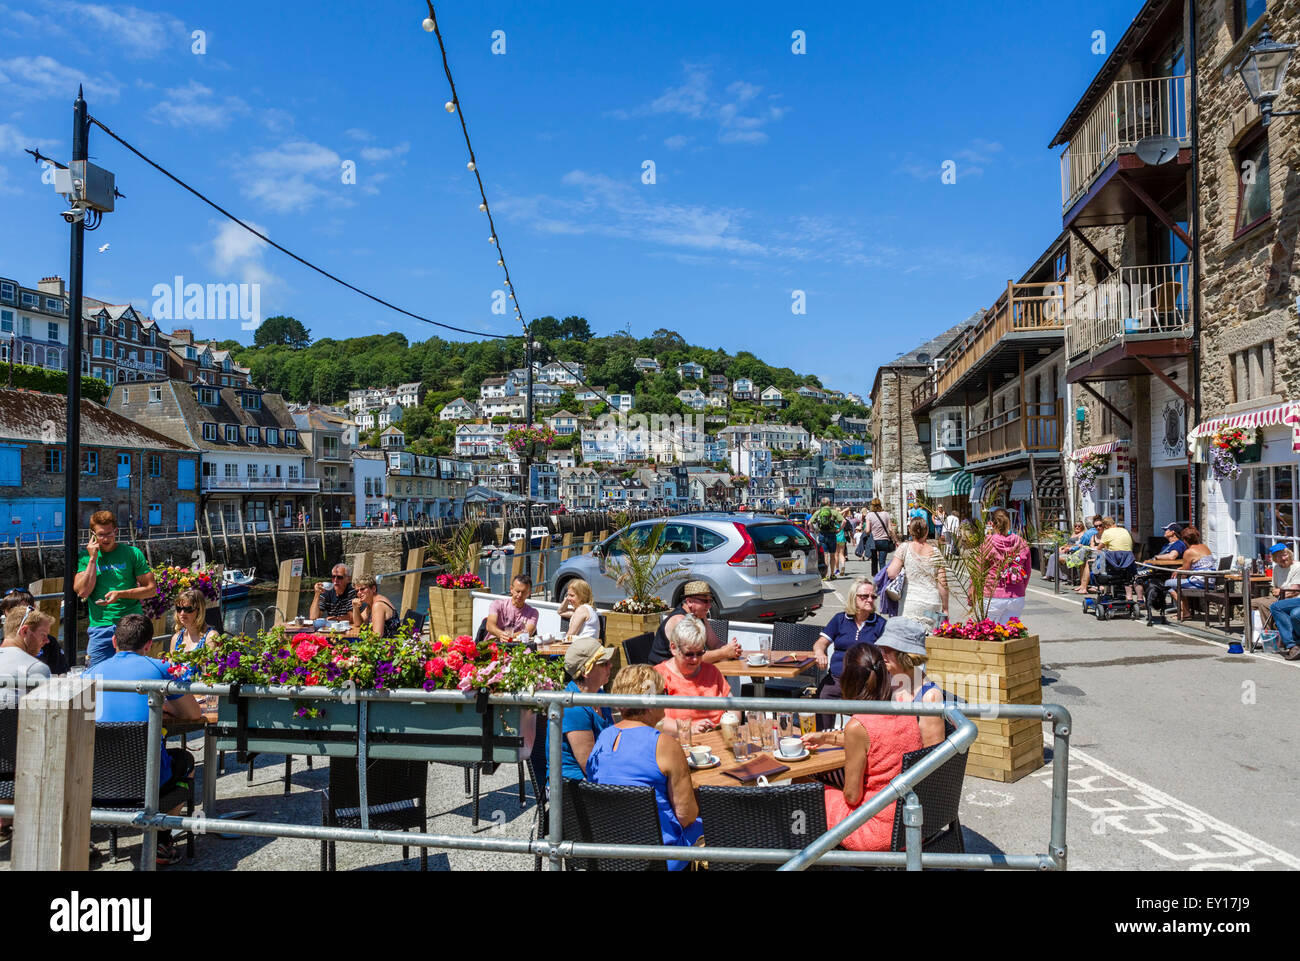 The Old Boathouse Pub on the Quay in East Looe looking over the river to West Looe, Cornwall, England, UK - Stock Image